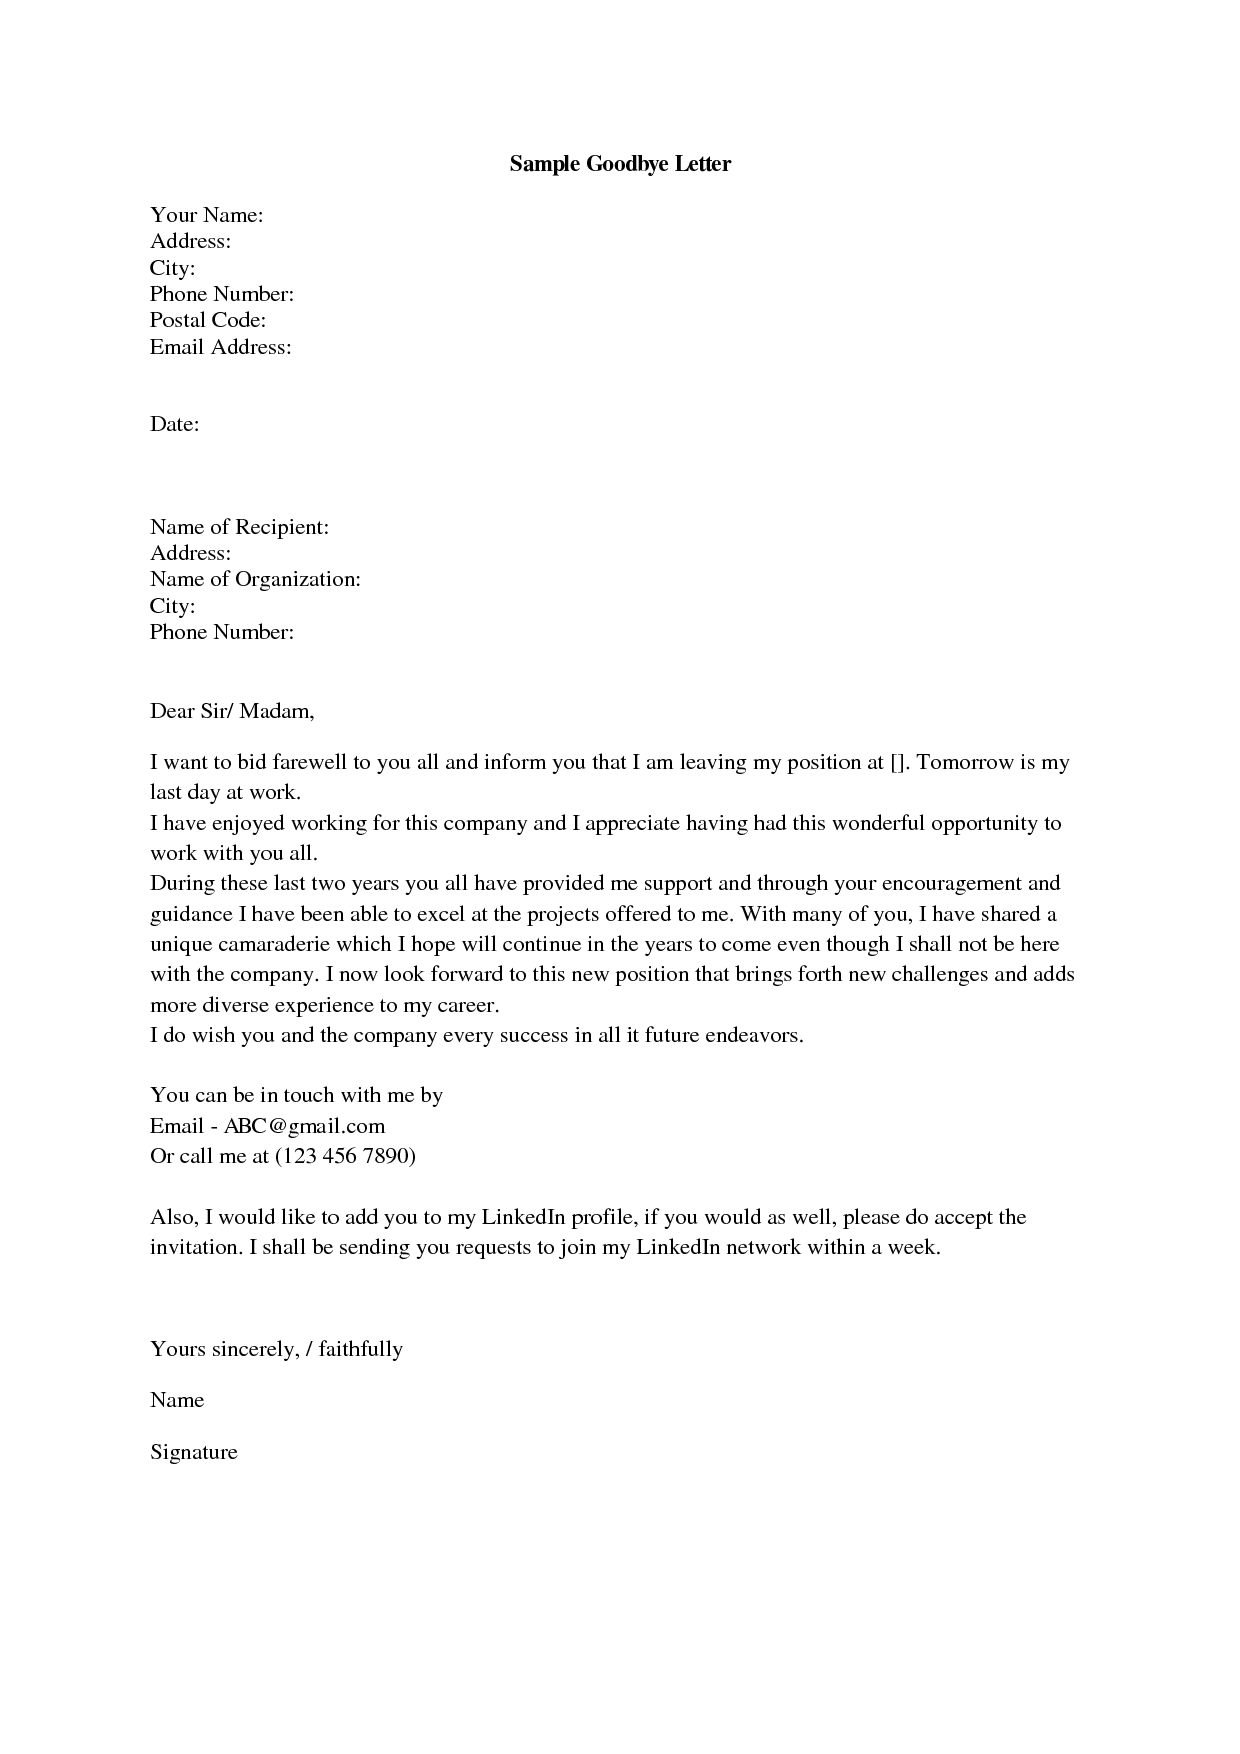 Goodbye Letter From Work - Apology Letter 2017